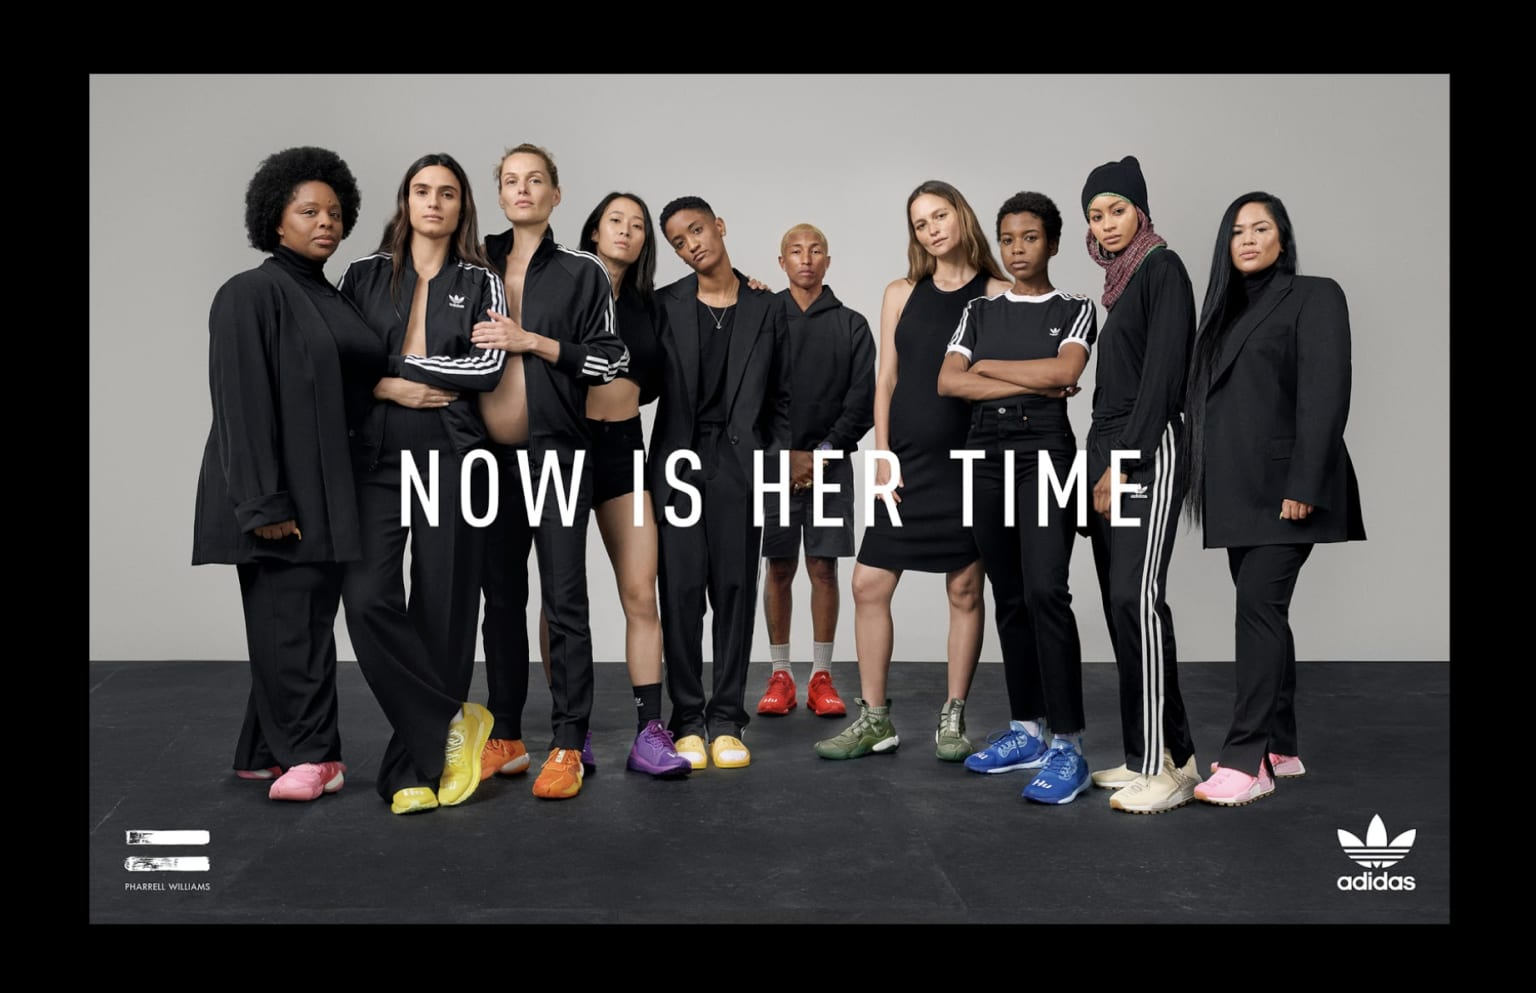 adidas Originals Pharrell Williams NOW IS HER TIME